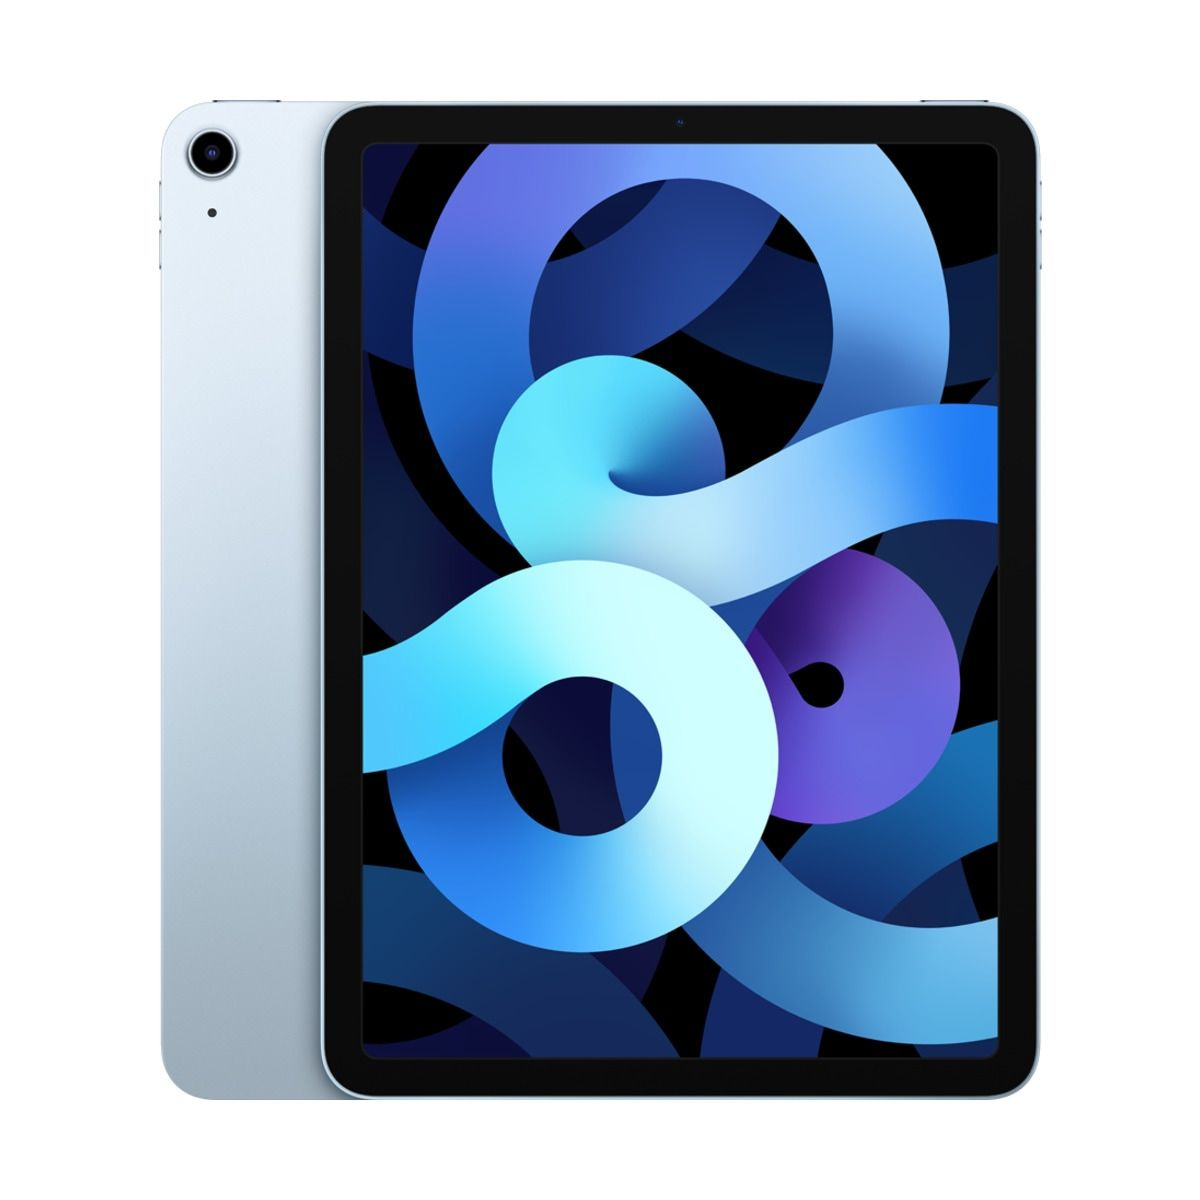 iPad Air Wi-Fi+Cell 256GB - Sky Blue